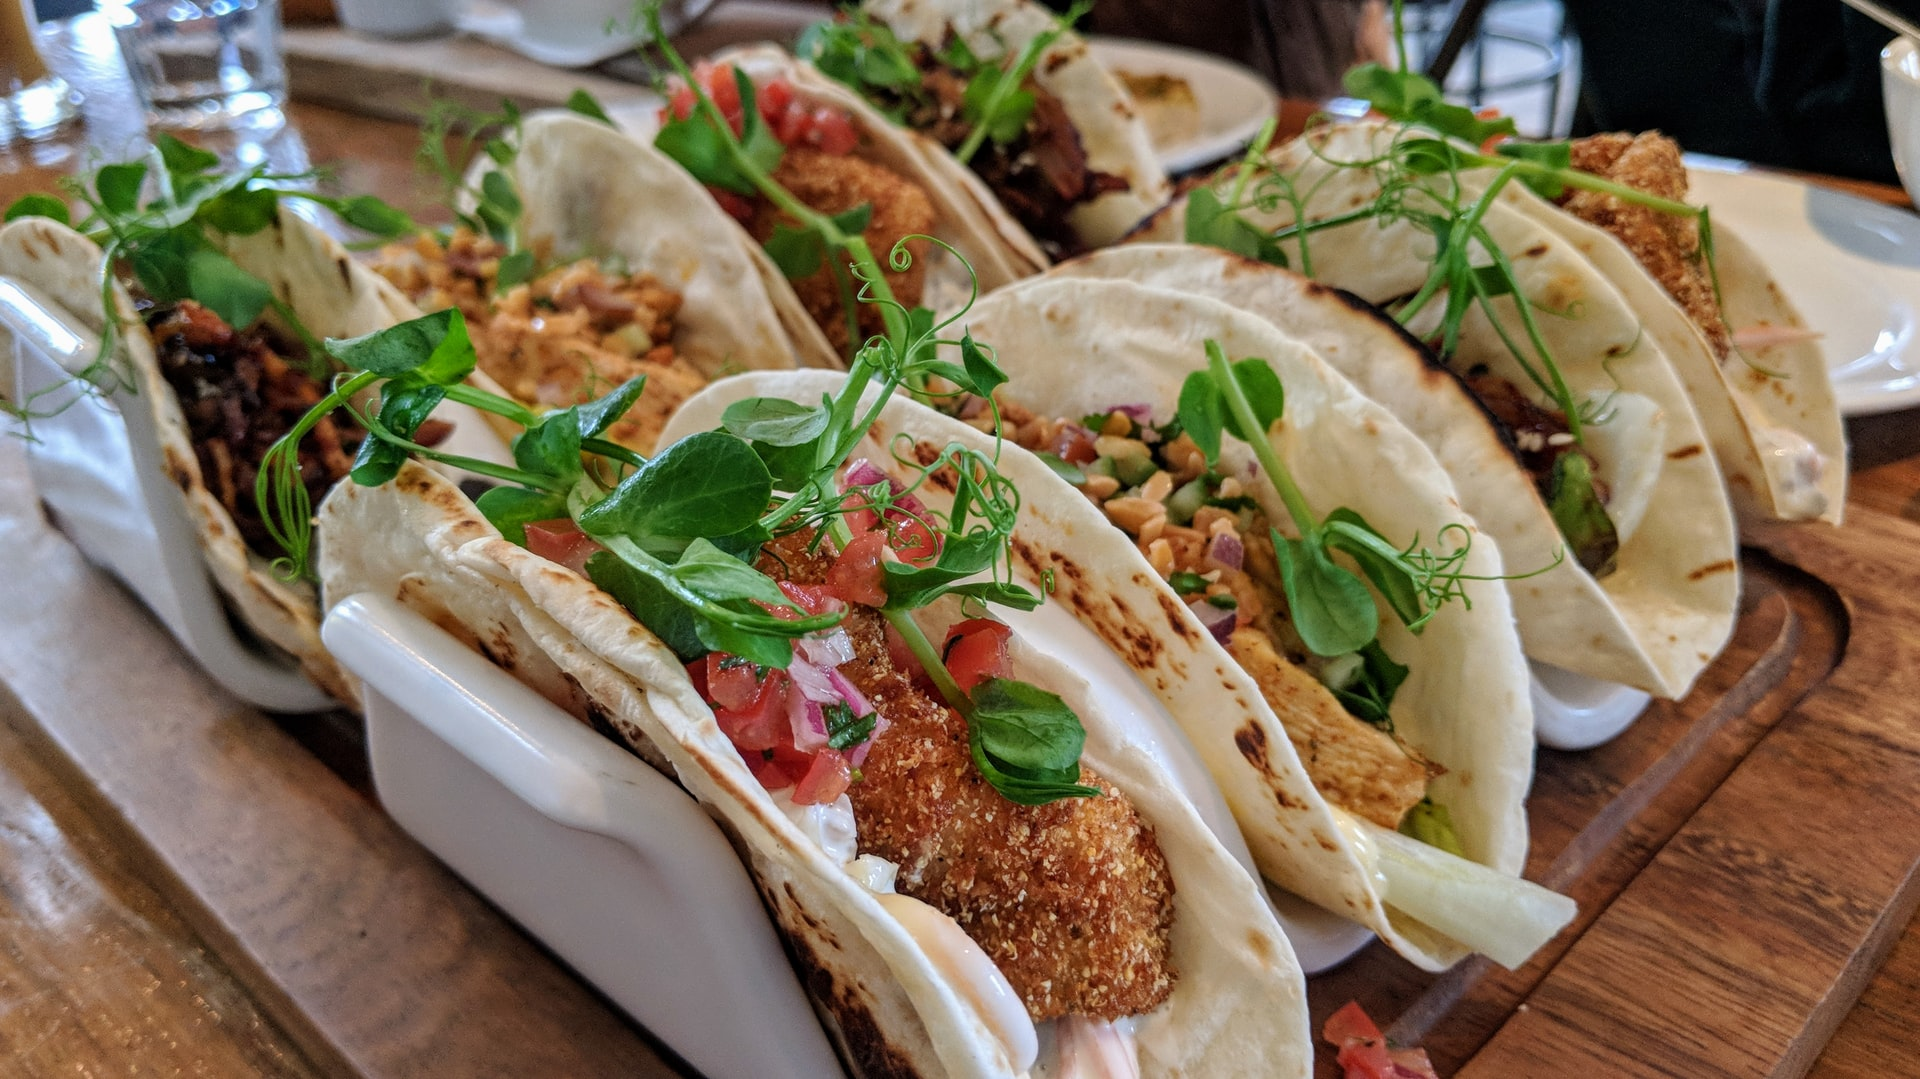 The 10 Best Places to Eat Tacos in London - Spring 2021